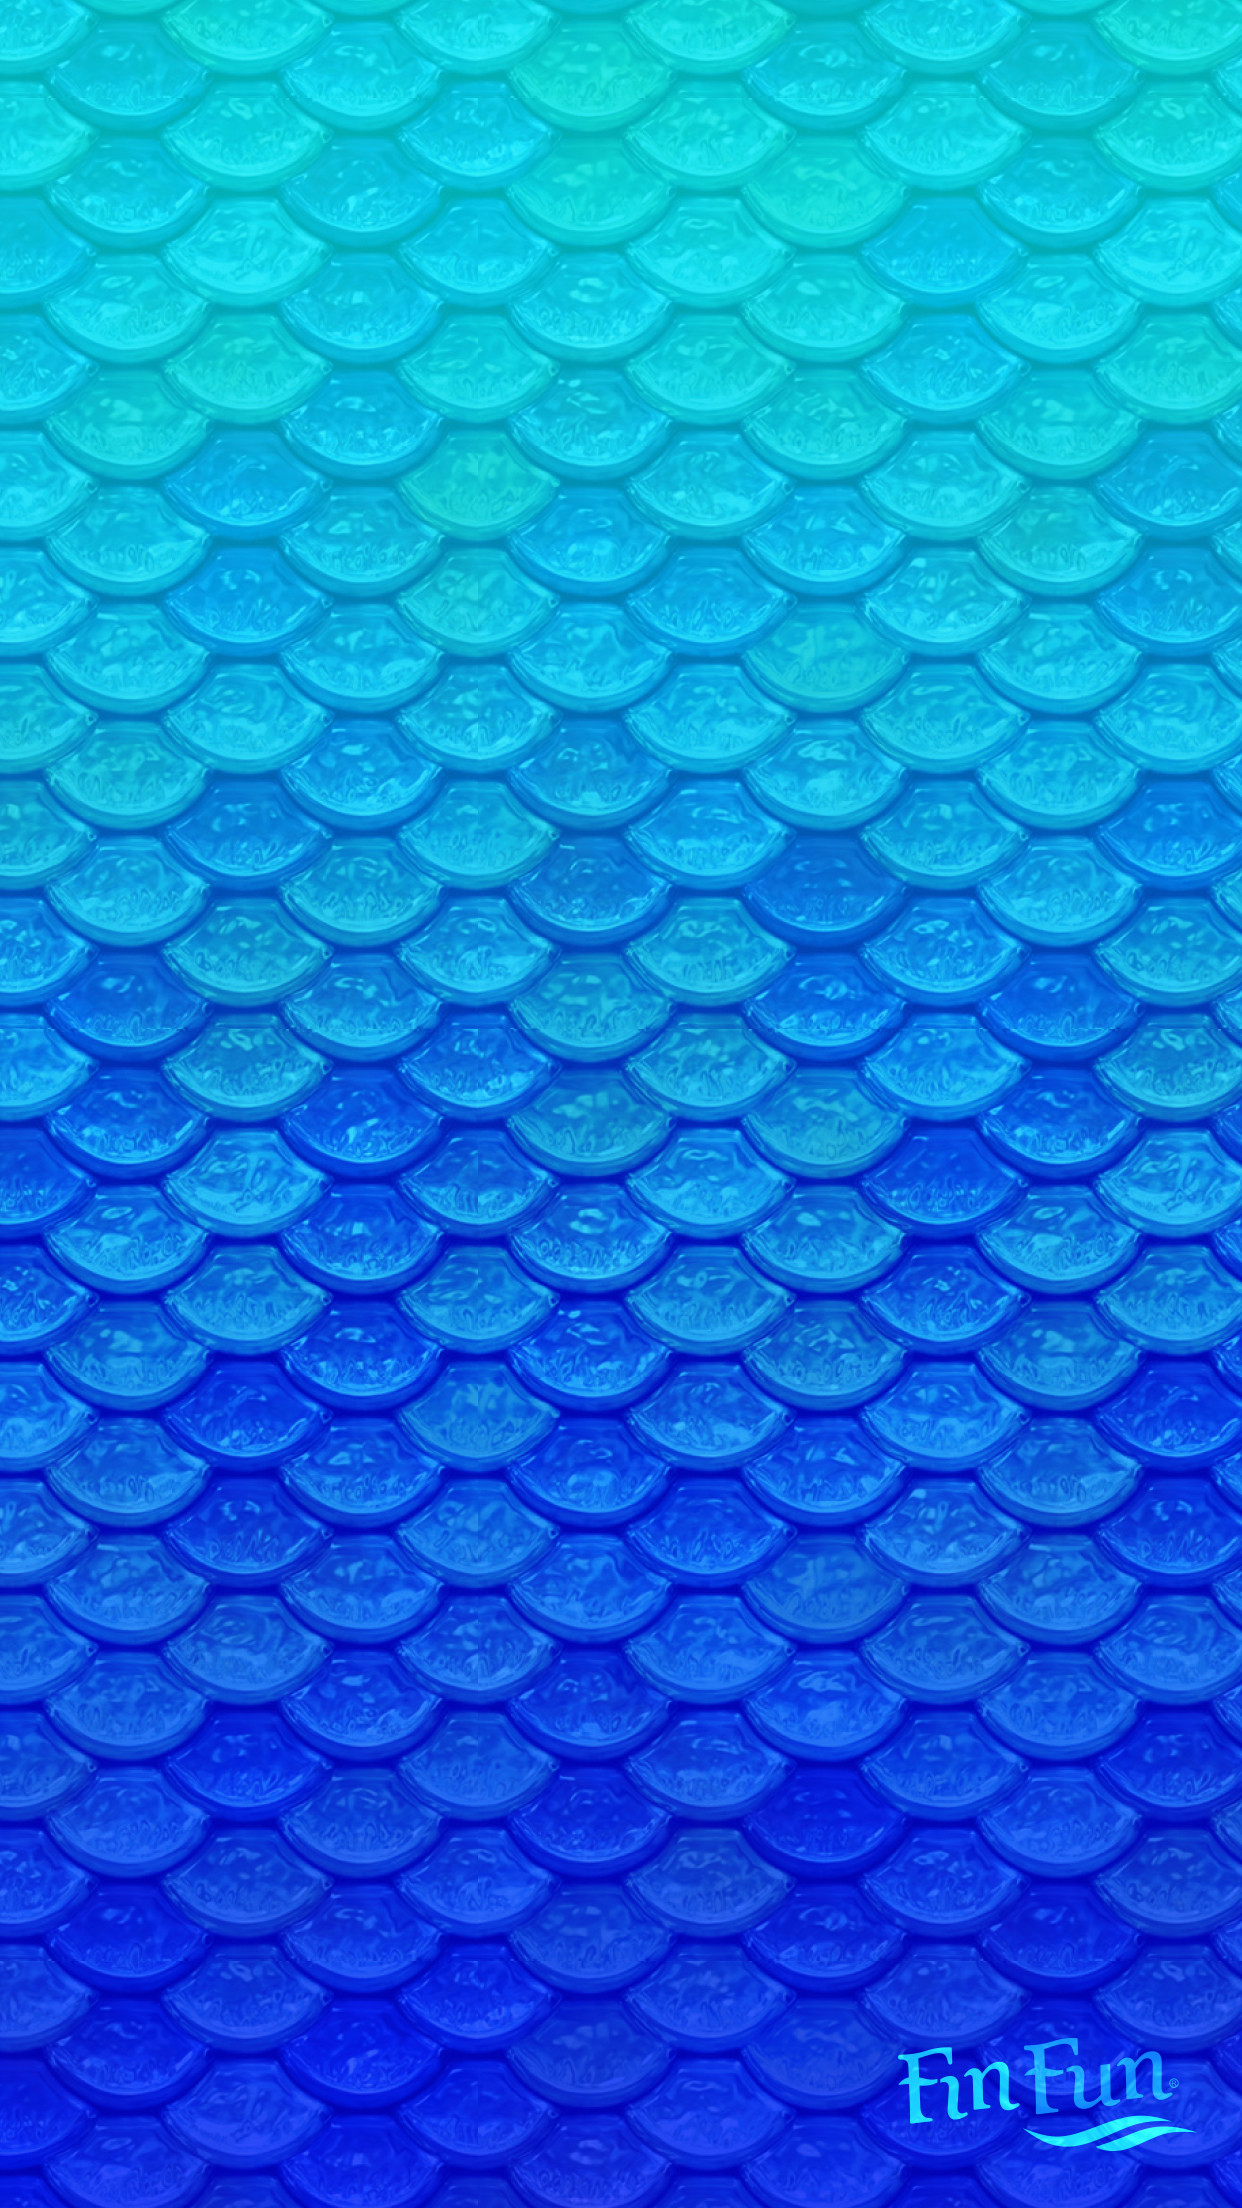 Mermaid scale wallpaper for your phone or tablet. Download similar  wallpapers at FinFriends.com